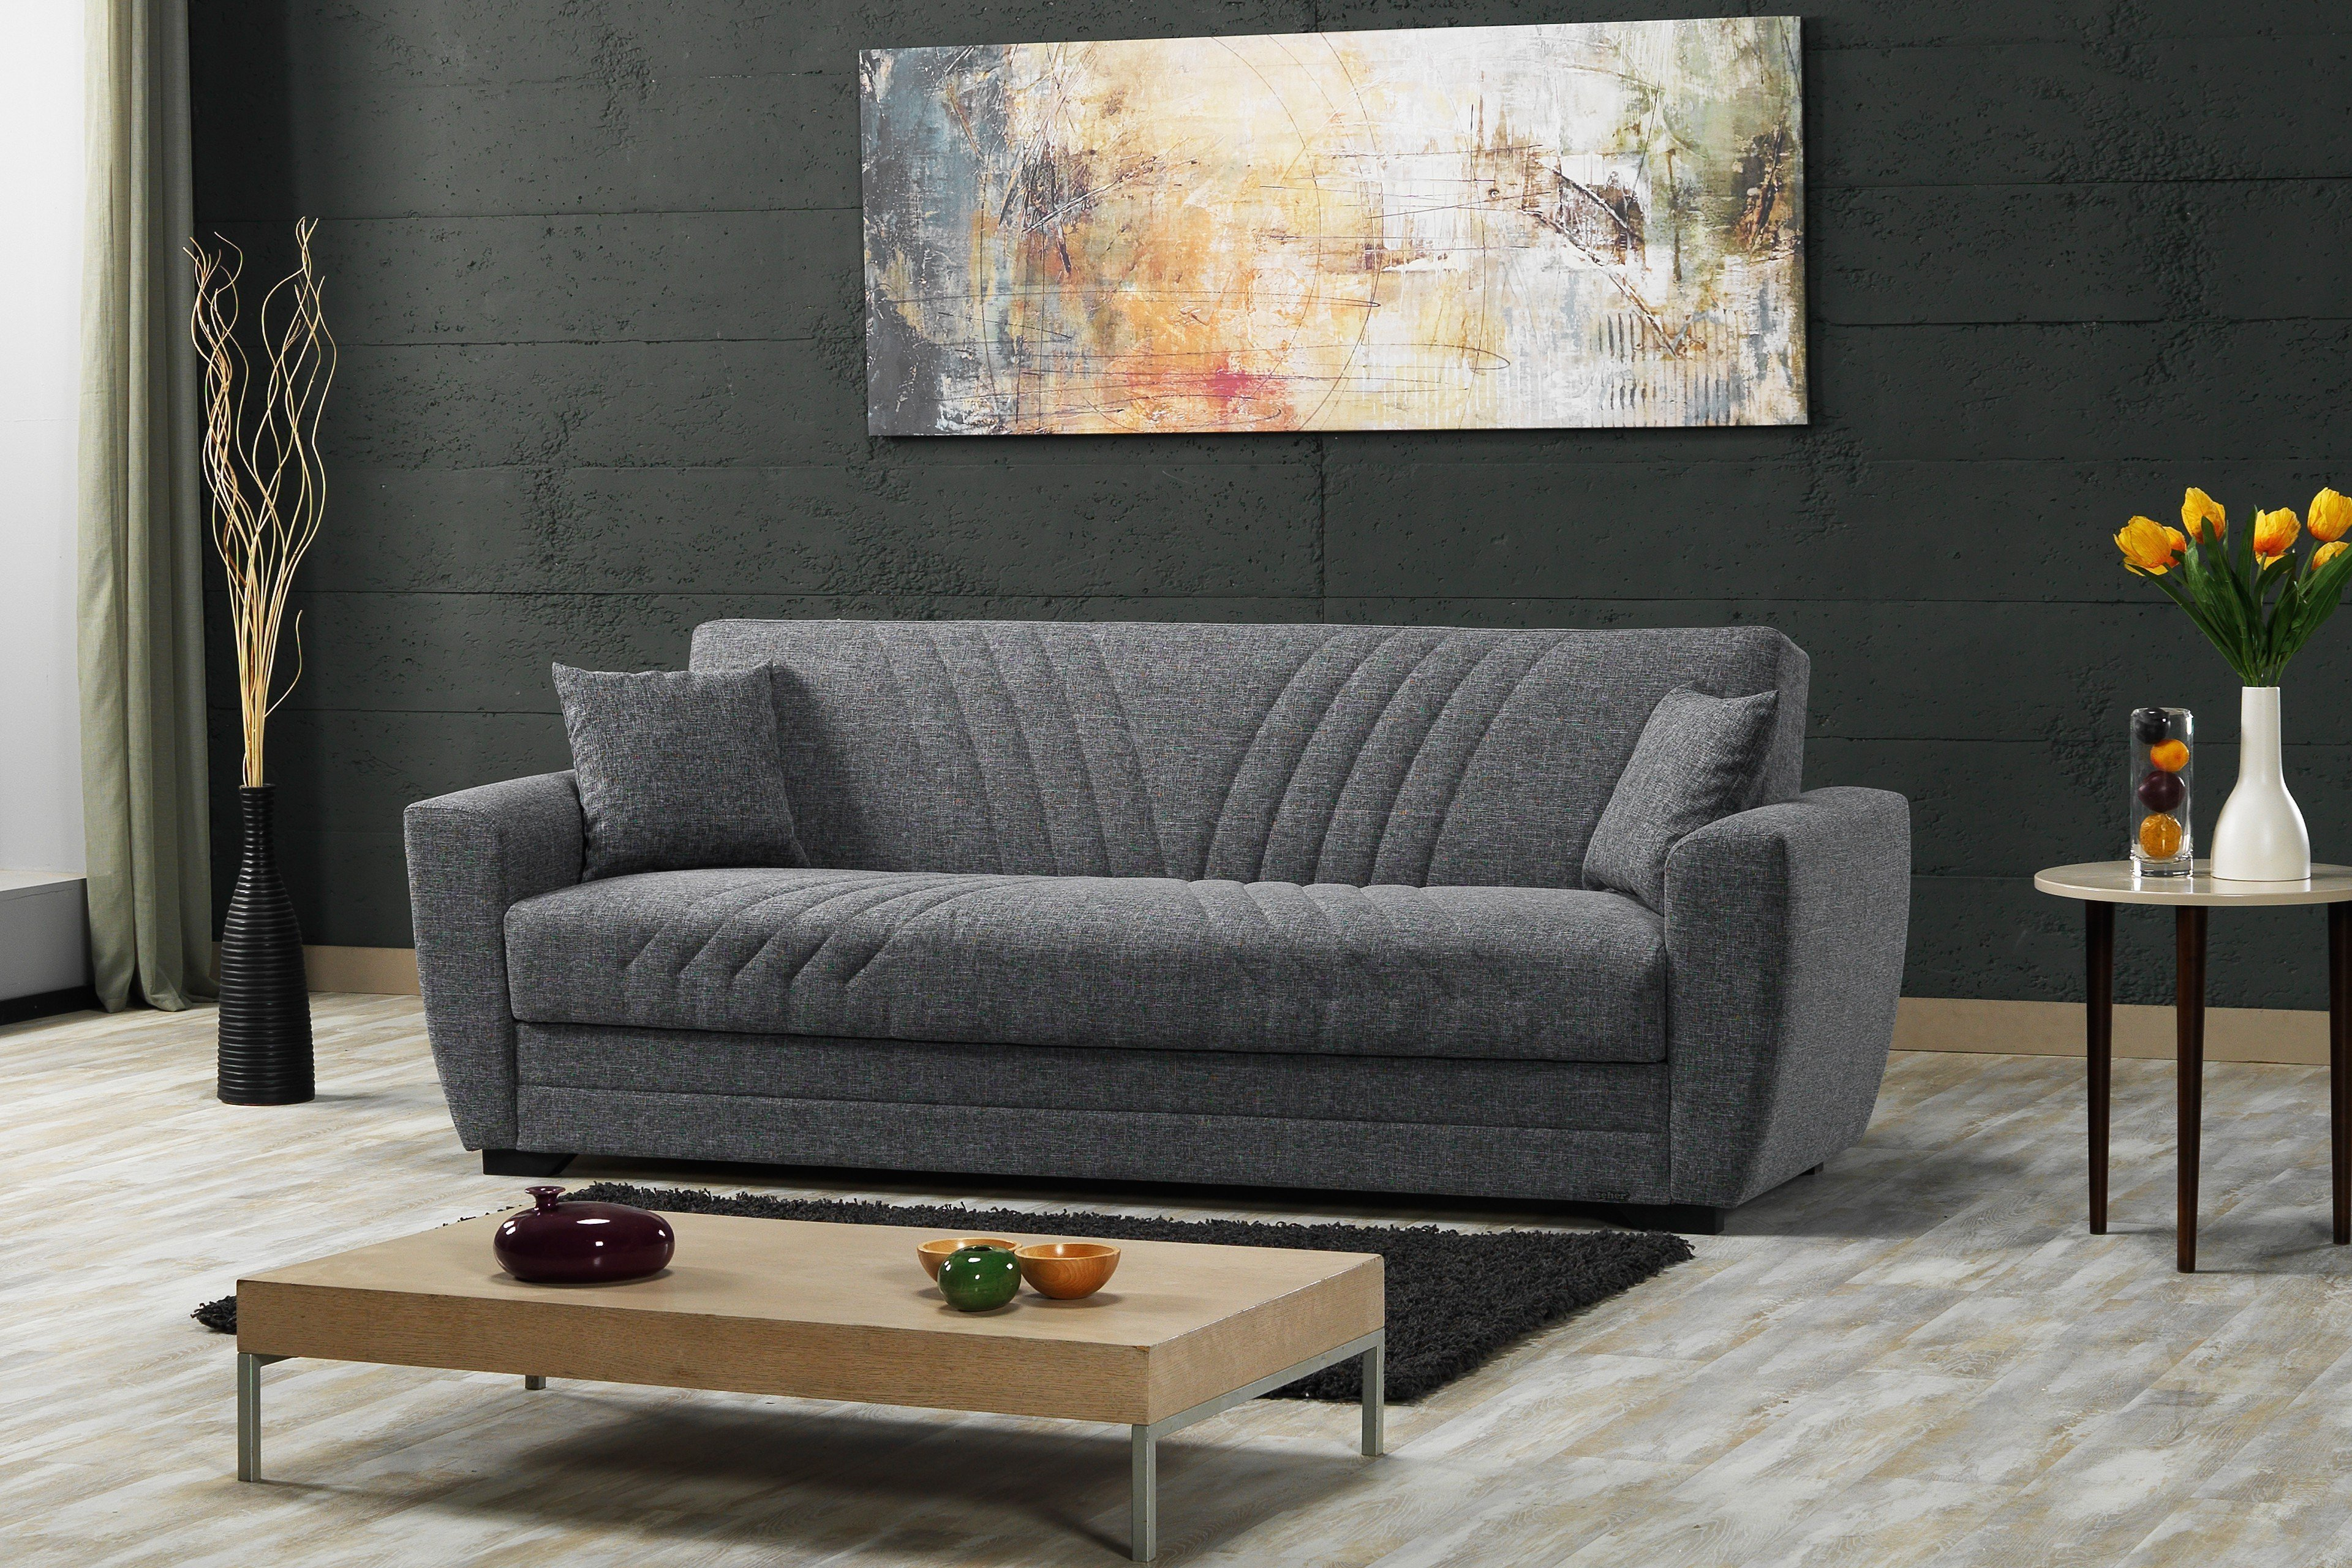 Ledersofa Anthrazit Couch Anthrazit Gallery Of Anthrazit Sofa Schn Galerie